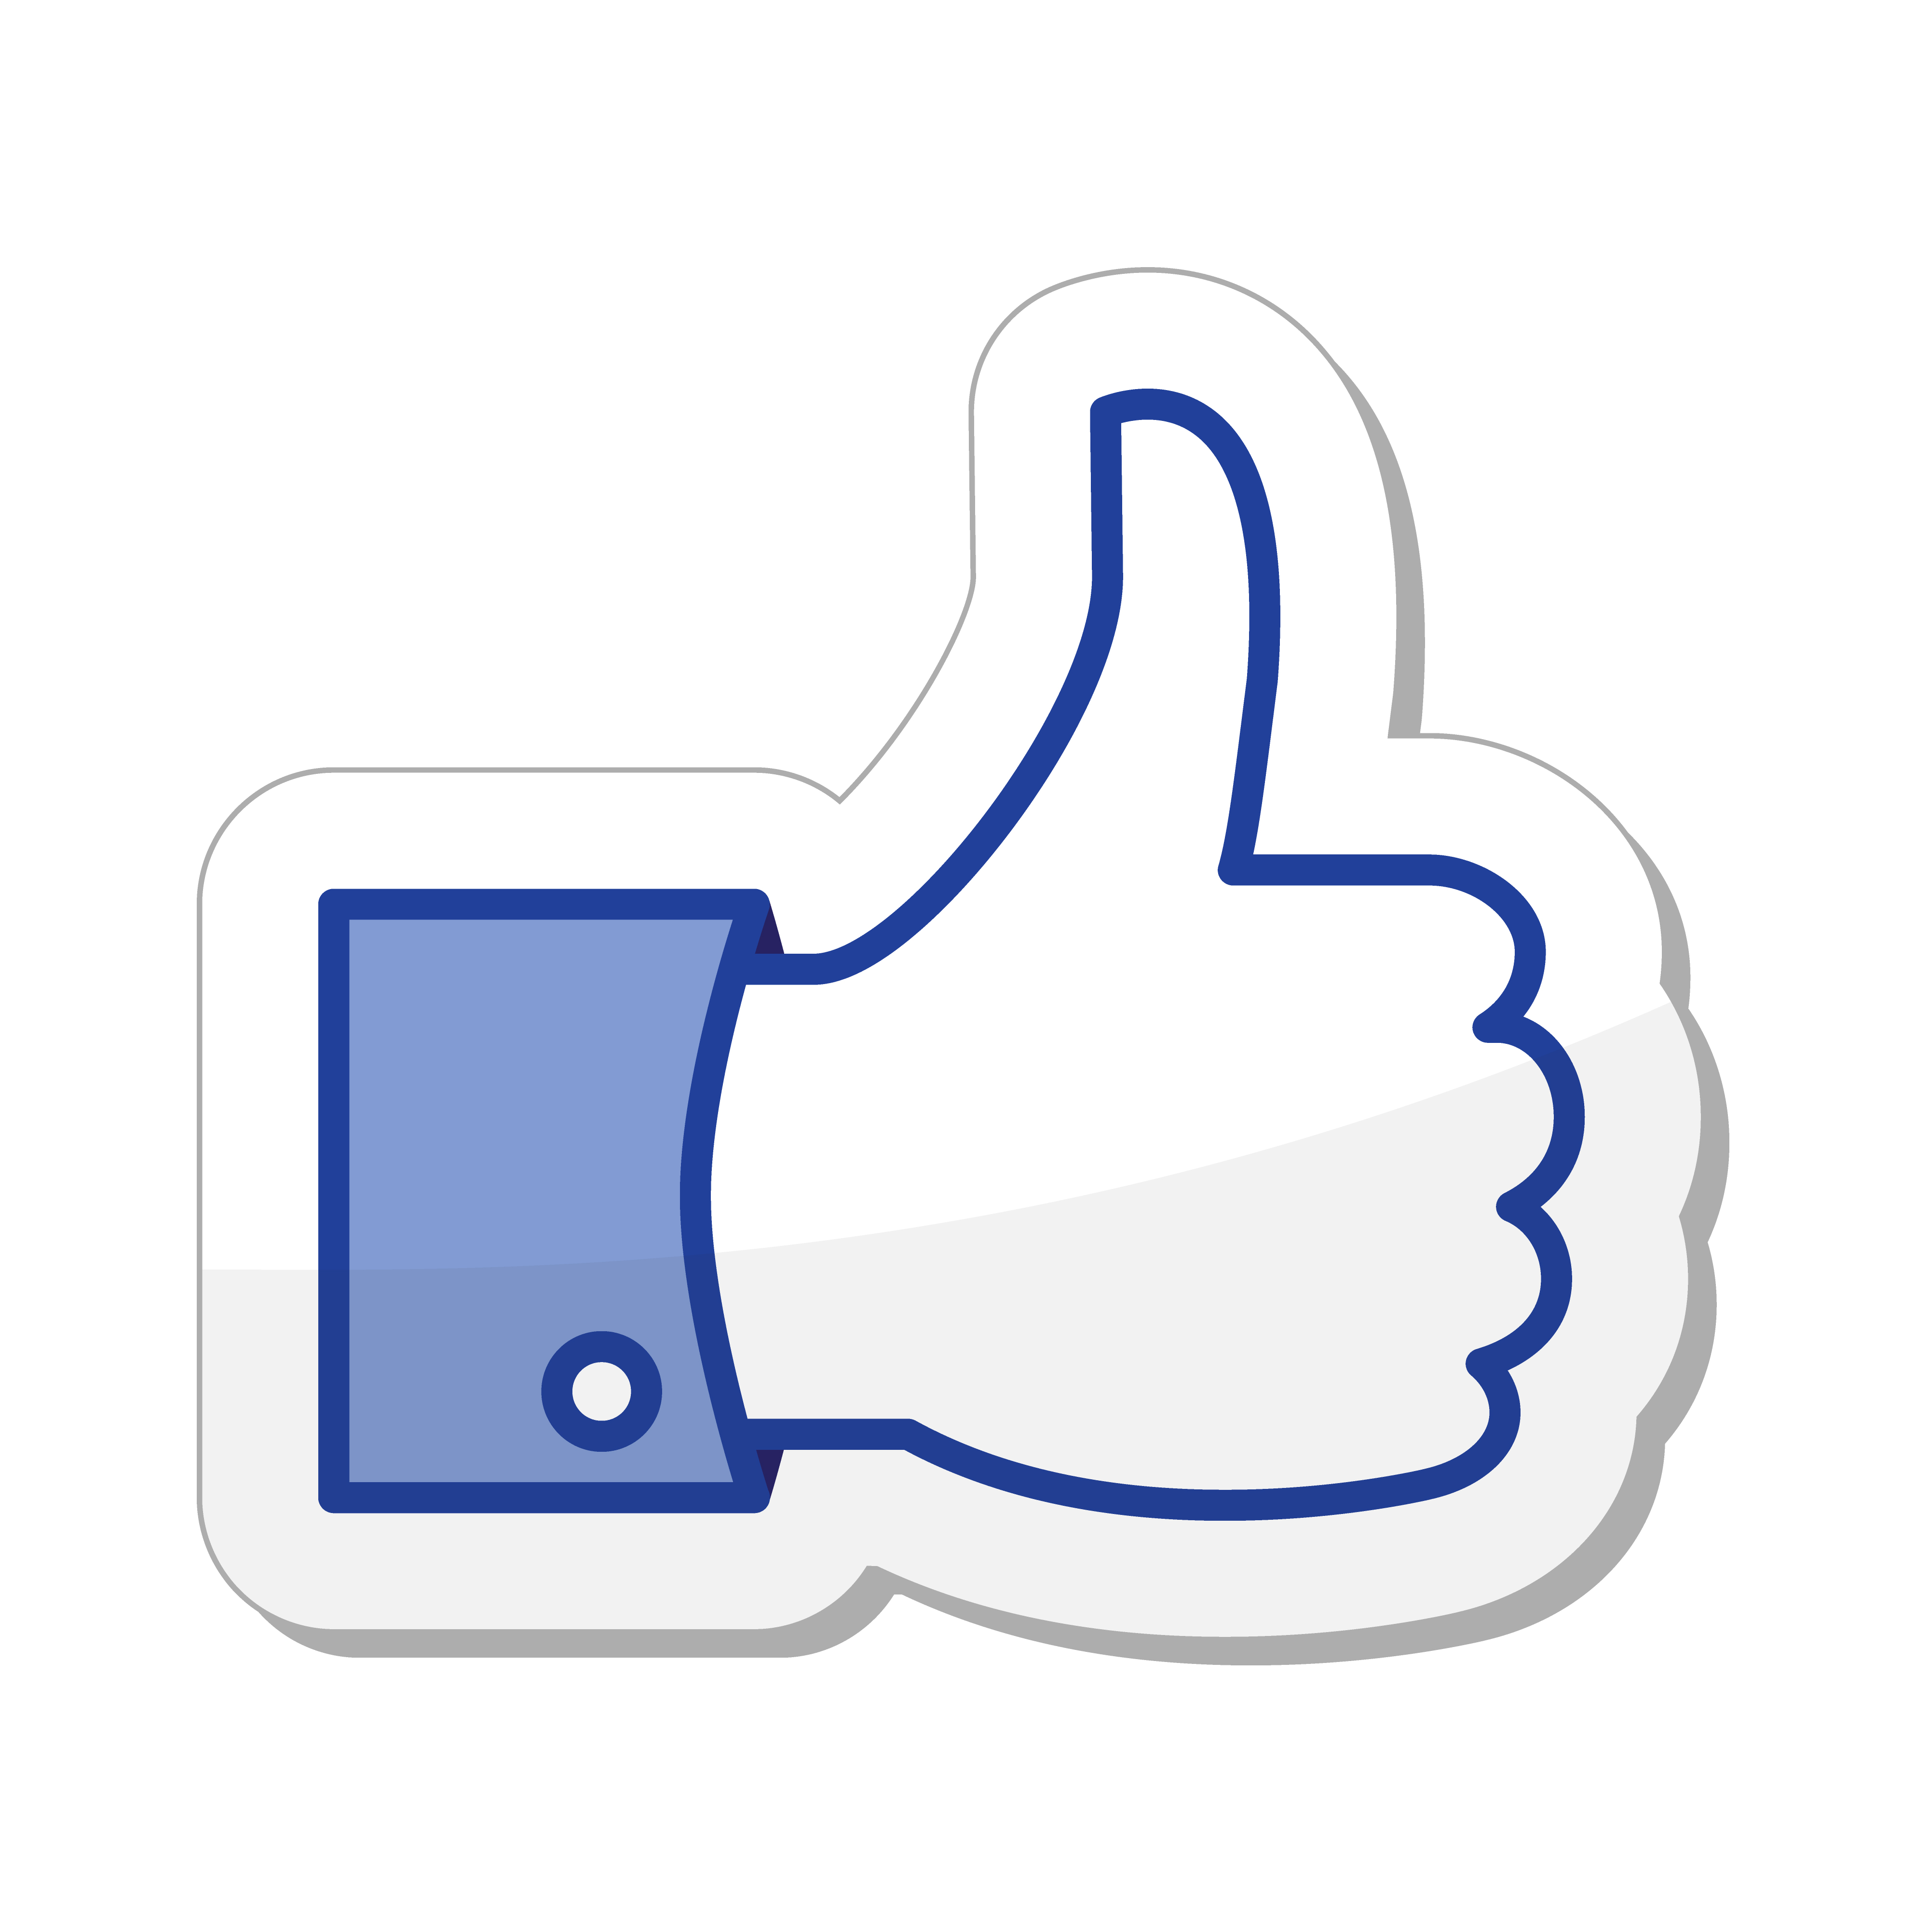 Thumbs Up Symbol For Facebook - ClipArt BestThumbs Up Symbol